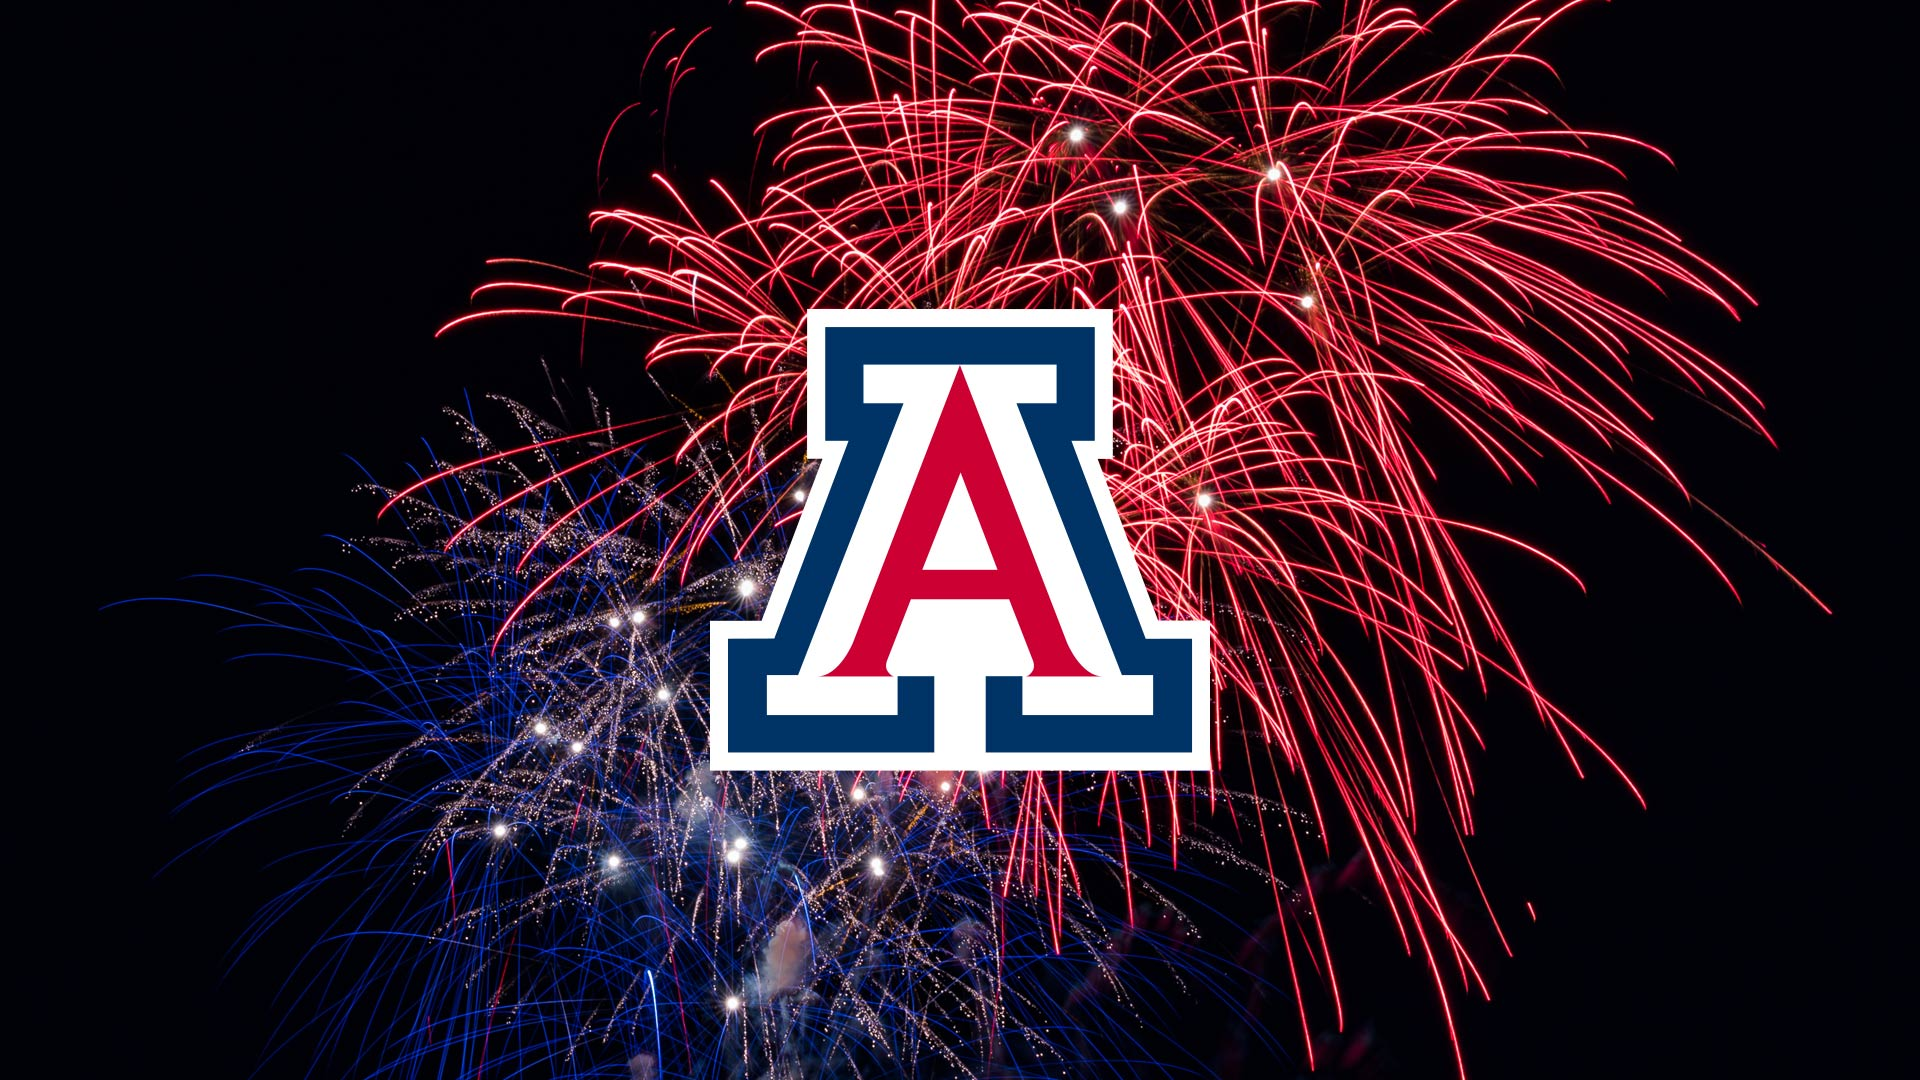 The University of Arizona May Commencement for 2018 takes place on Friday, May 11 at 7:30 p.m. at Arizona Stadium.